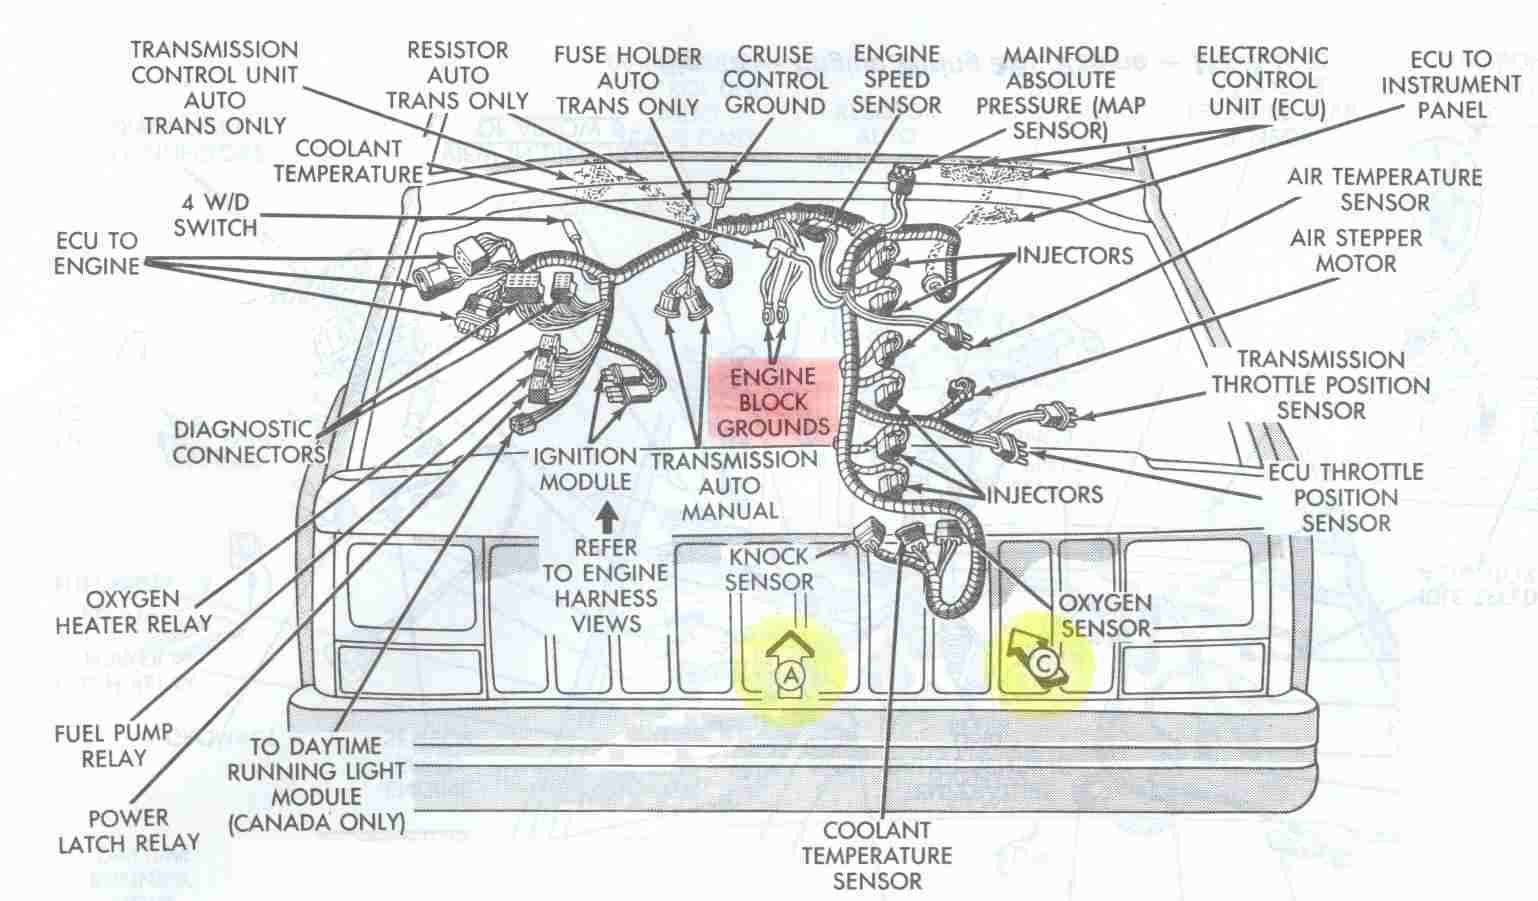 ab0134a7d9e021431187af597eb4aeca engine bay schematic showing major electrical ground points for 89 jeep cherokee wiring diagram at soozxer.org